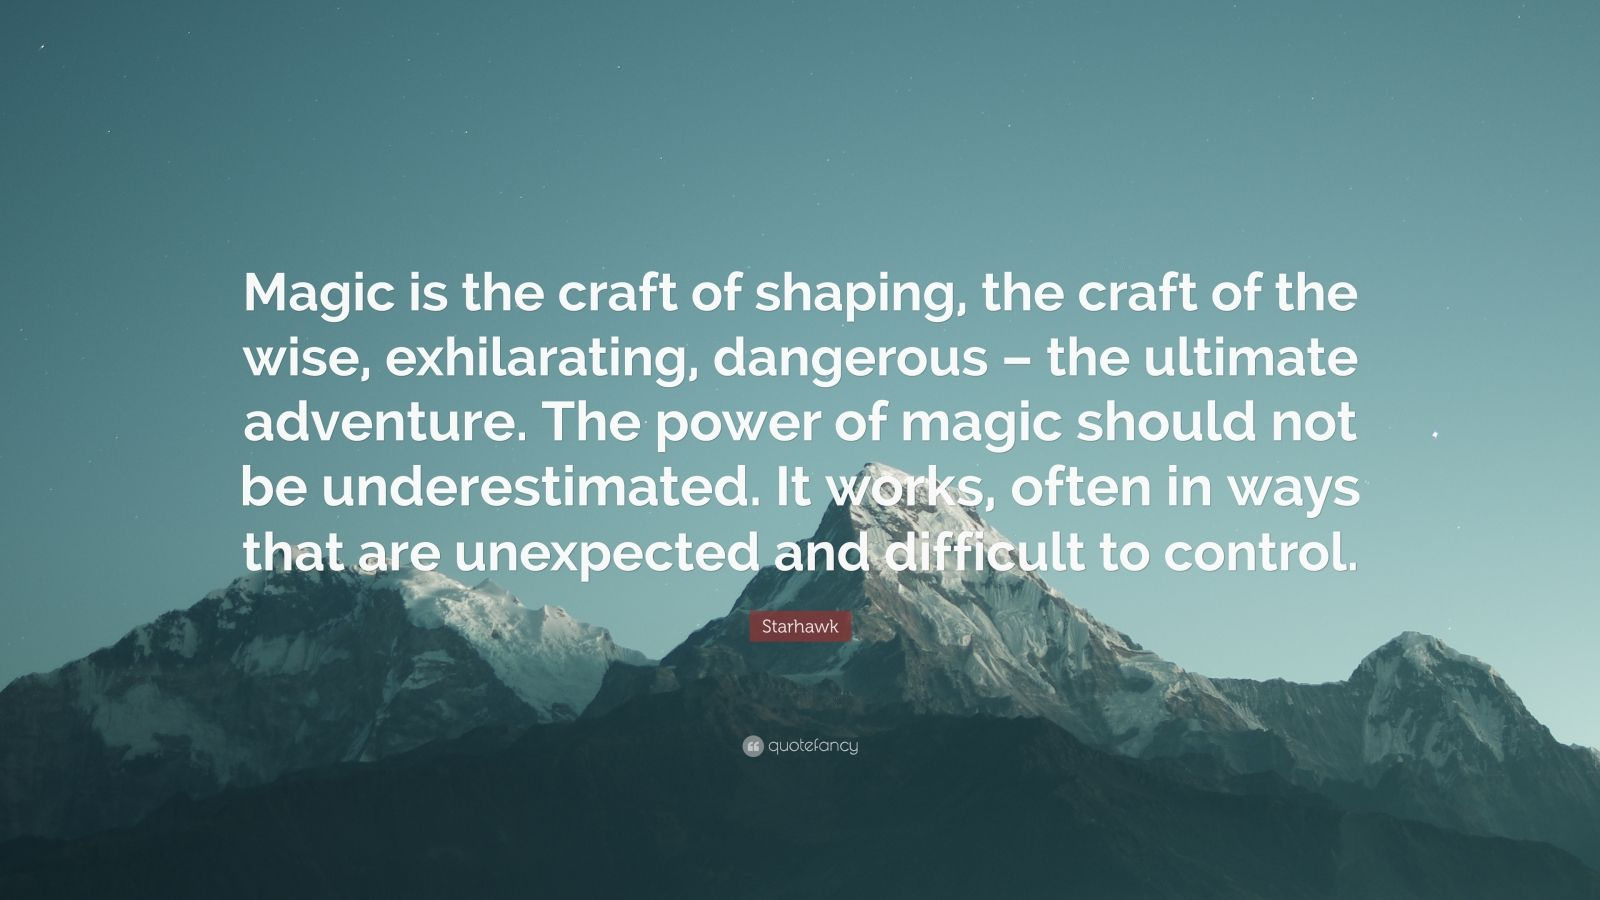 """Starhawk Quote: """"Magic is the craft of shaping, the craft of the wise, exhilarating, dangerous – the ultimate adventure. The power of magic should not be underestimated. It works, often in ways that are unexpected and difficult to control."""""""